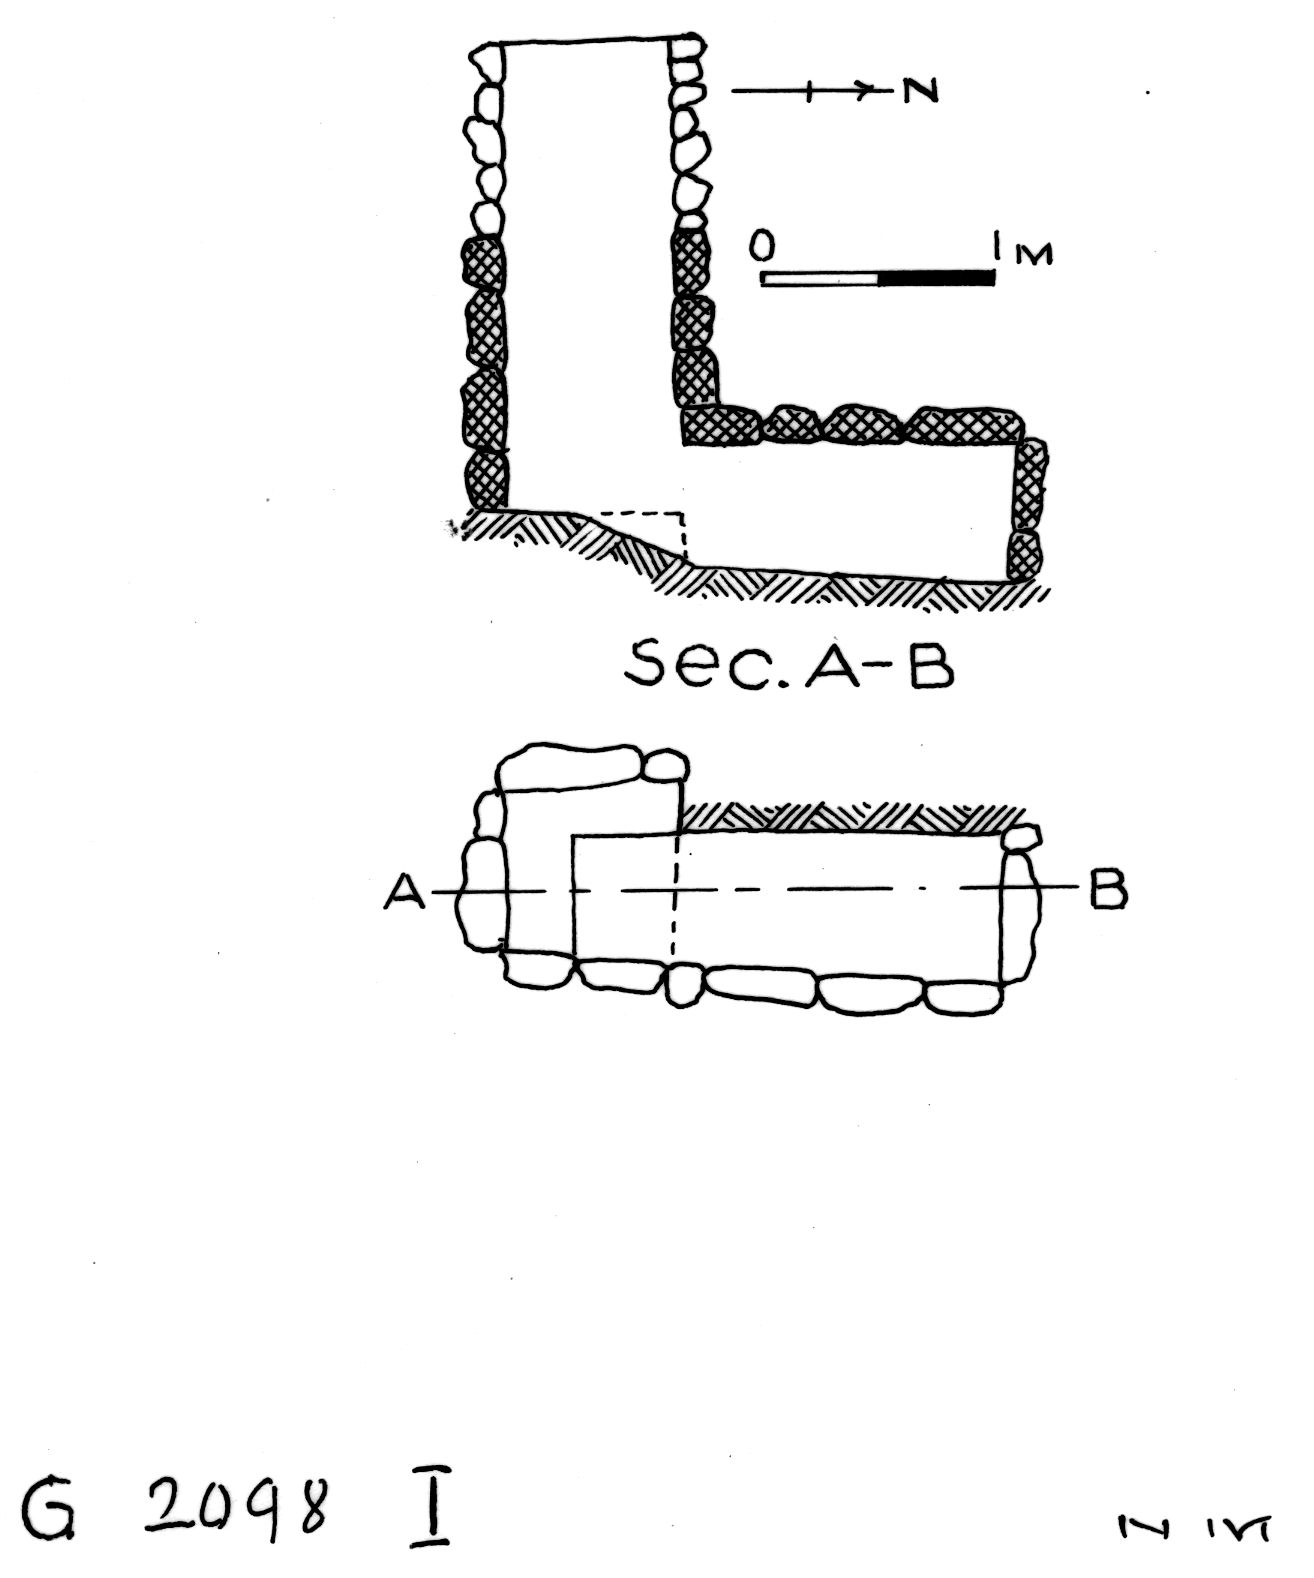 Maps and plans: G 2098, Shaft I